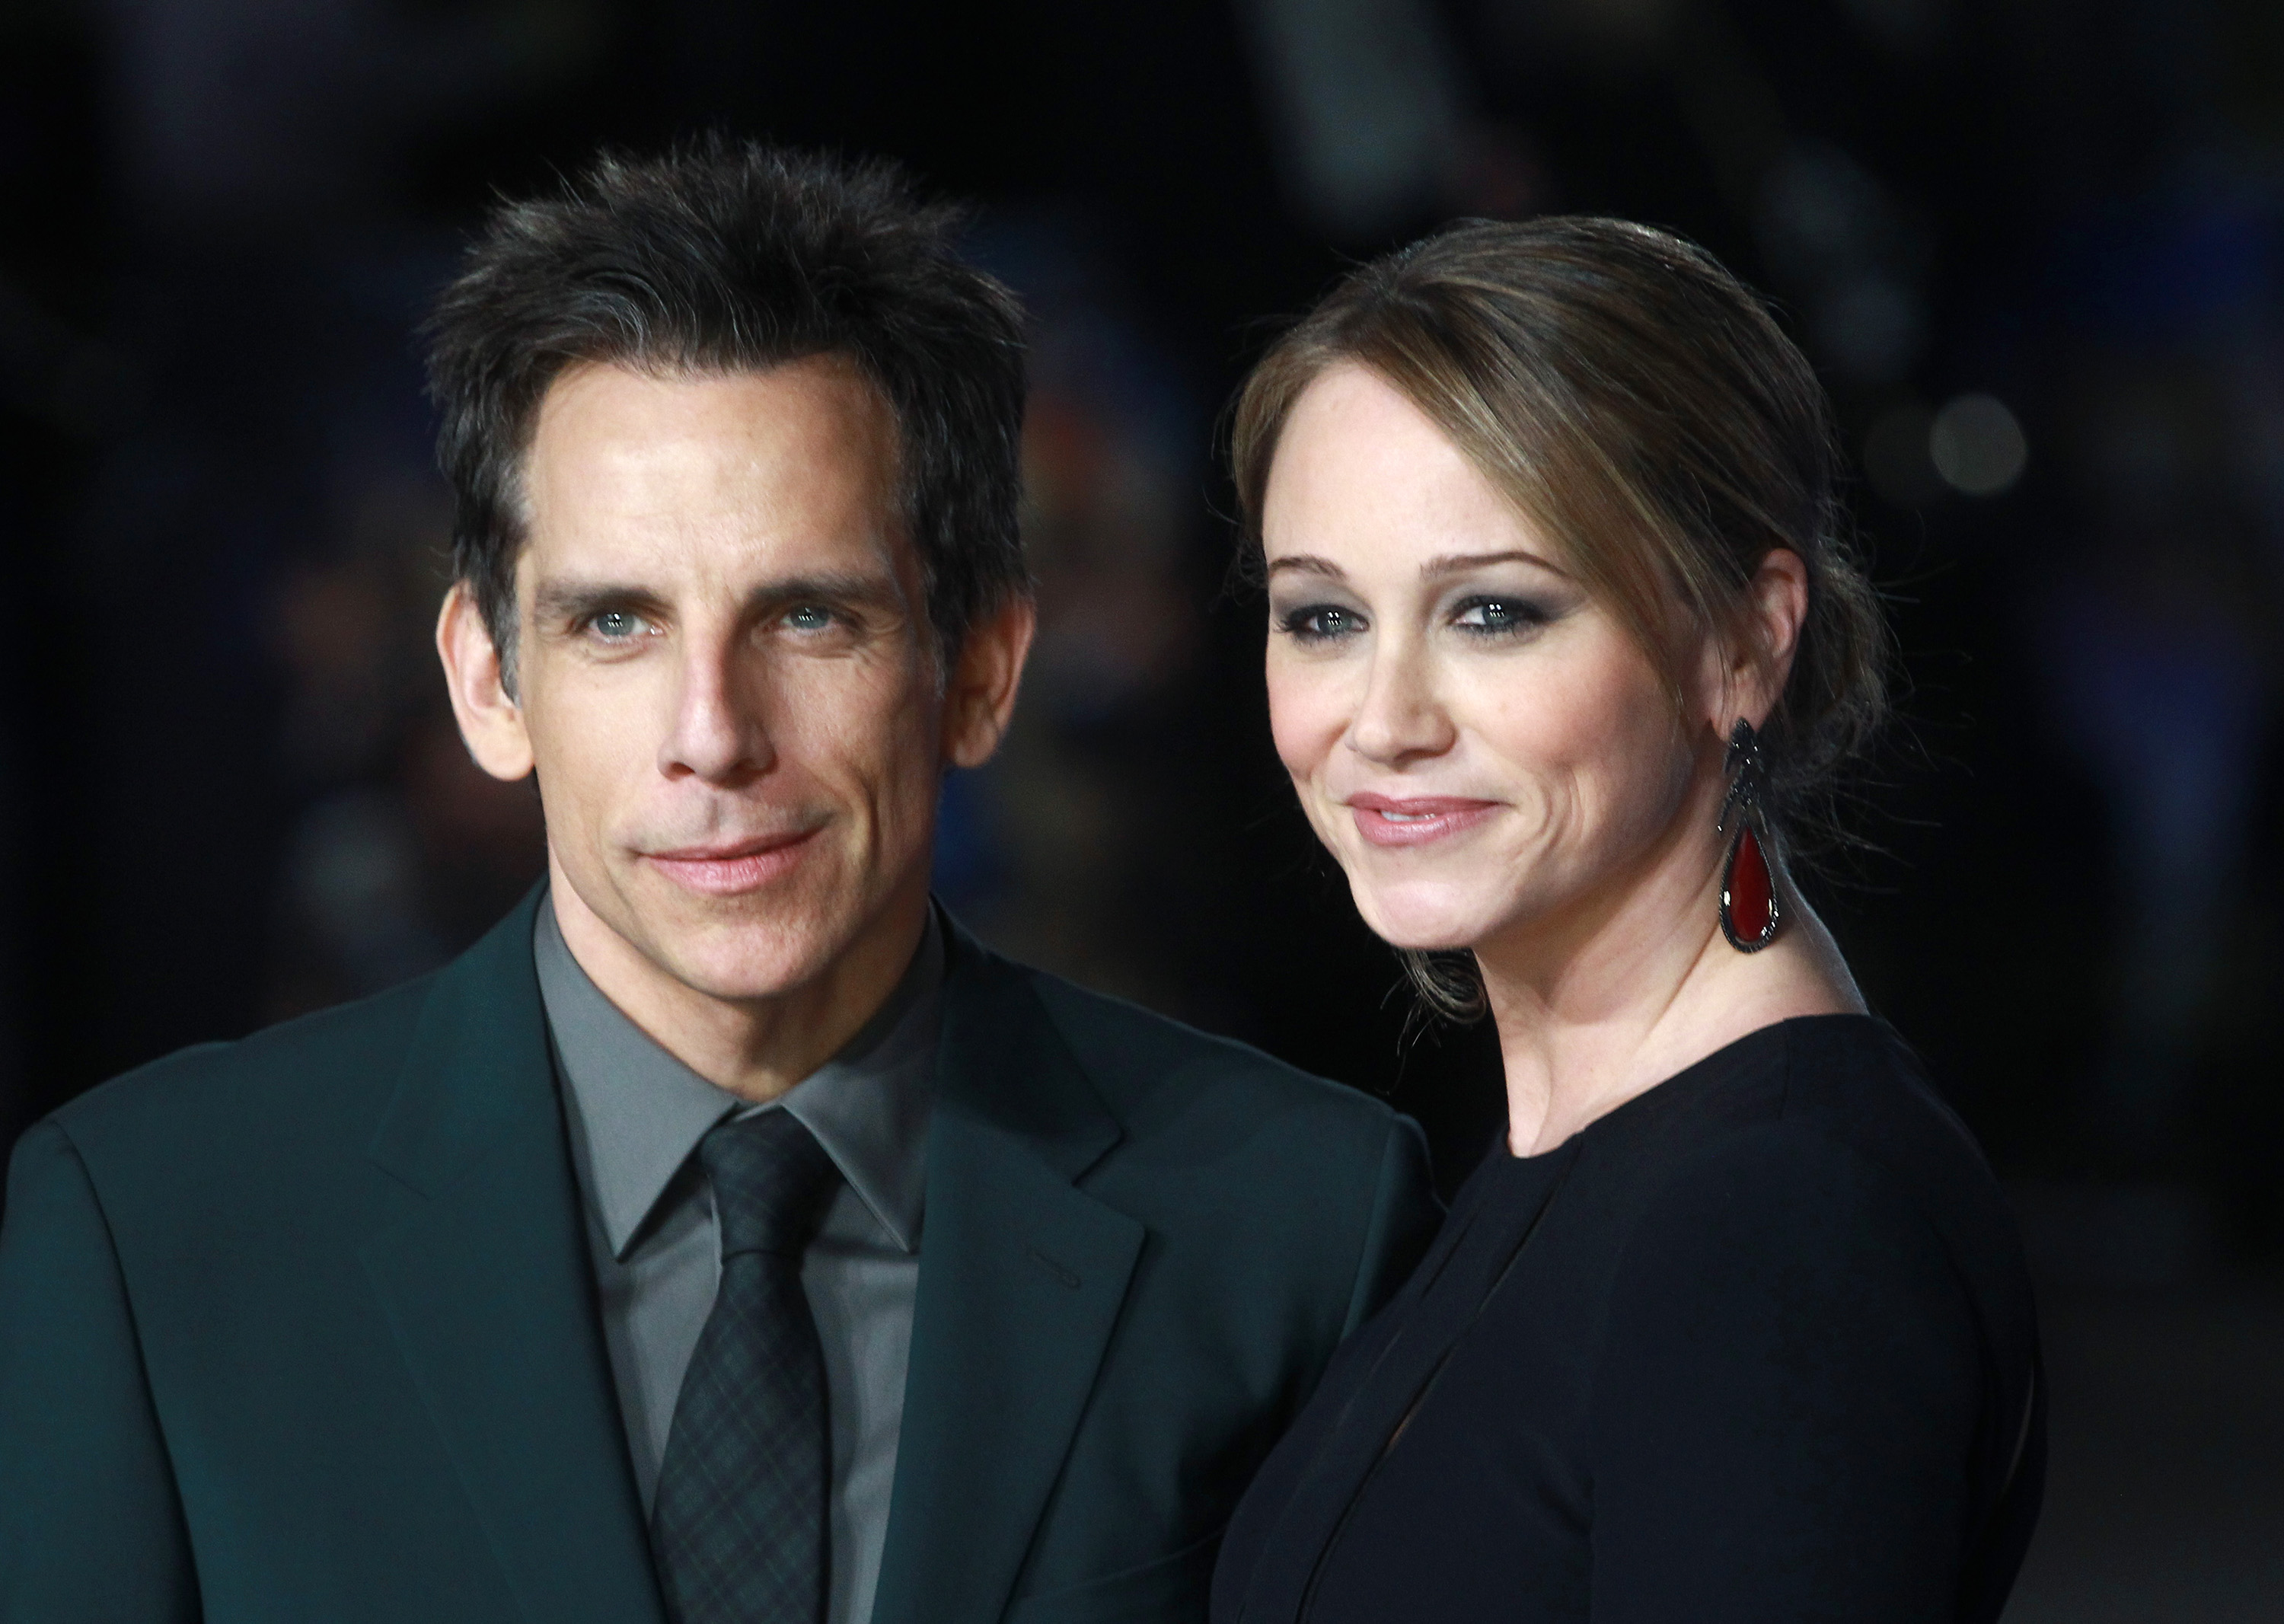 Ben Stiller and Christine Taylor attend the UK Premiere of  Night At The Museum: Secret Of The Tomb  at Empire Leicester Square on December 15, 2014 in London, England.